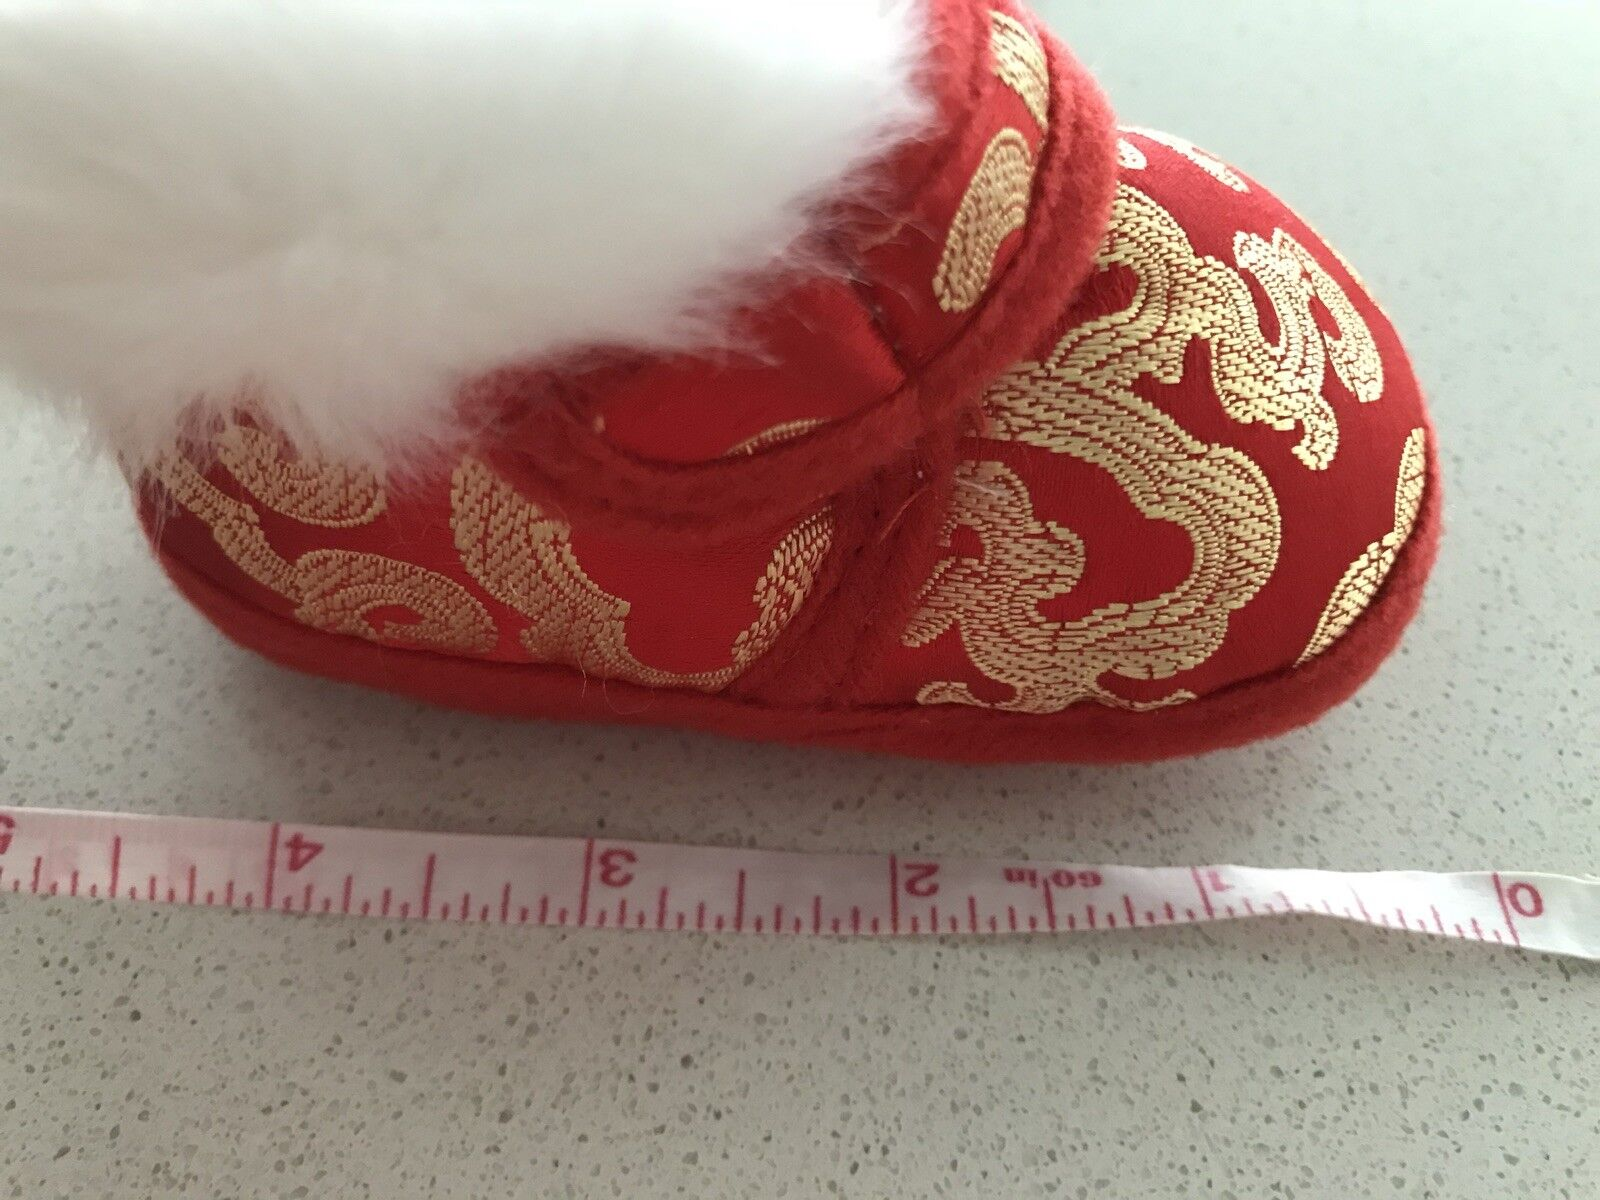 NEW Chinese Lunar New Year Baby Boots Size 4 1